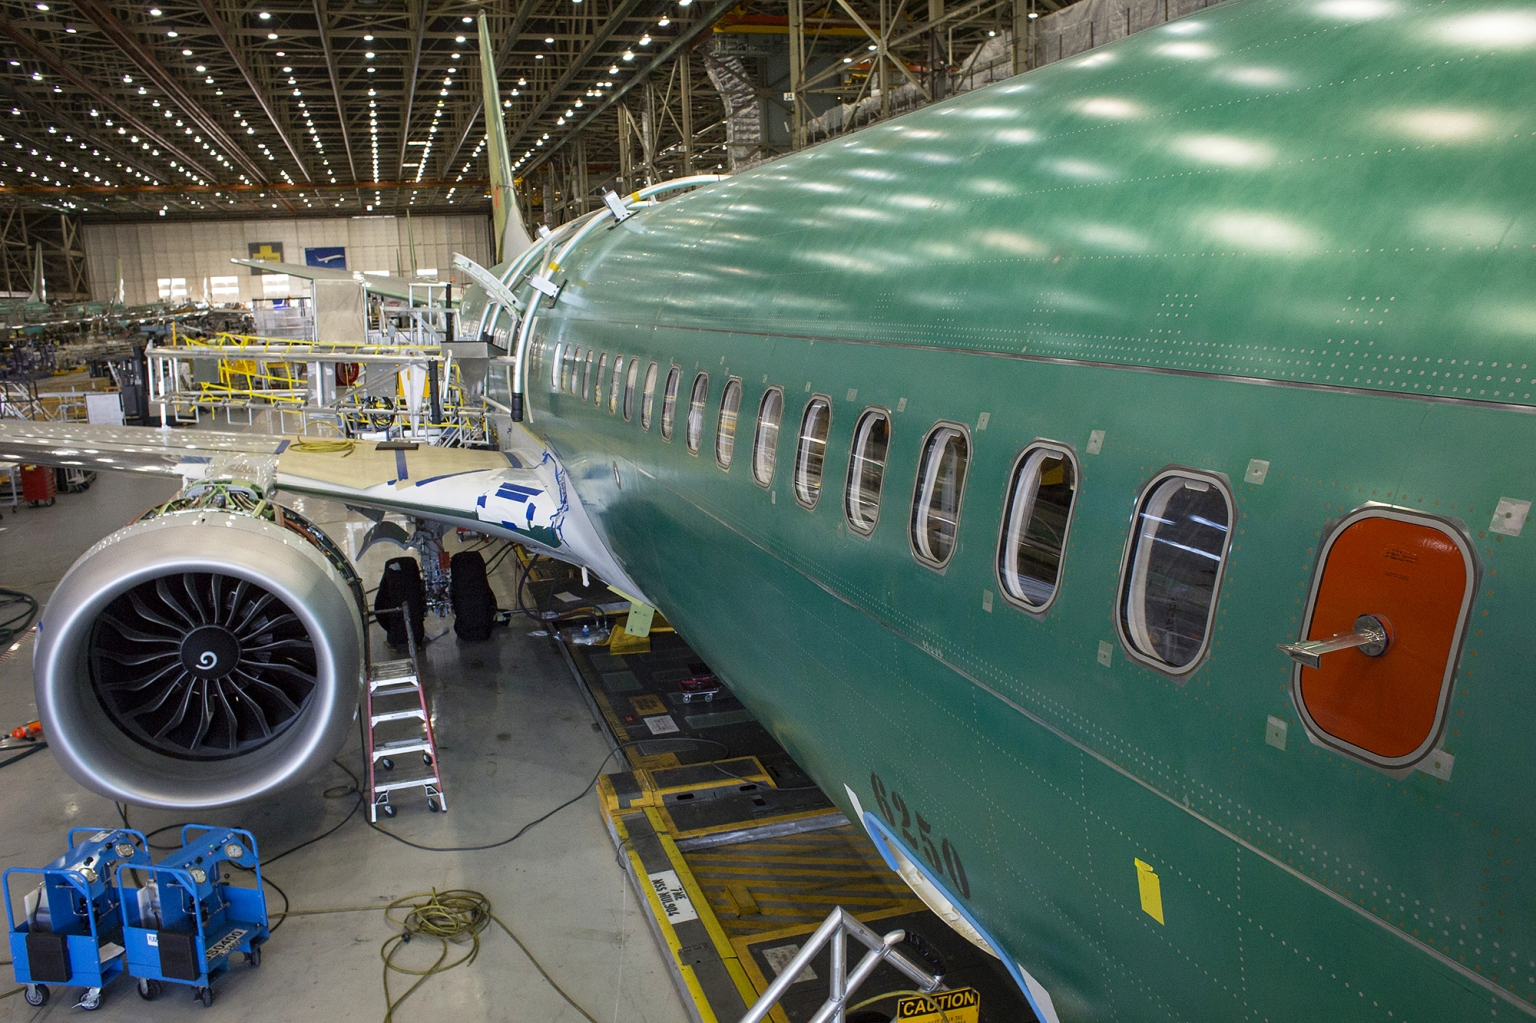 Boeing Agrees to Pay $2.5 Billion to Settle Charges Related to 737 Max